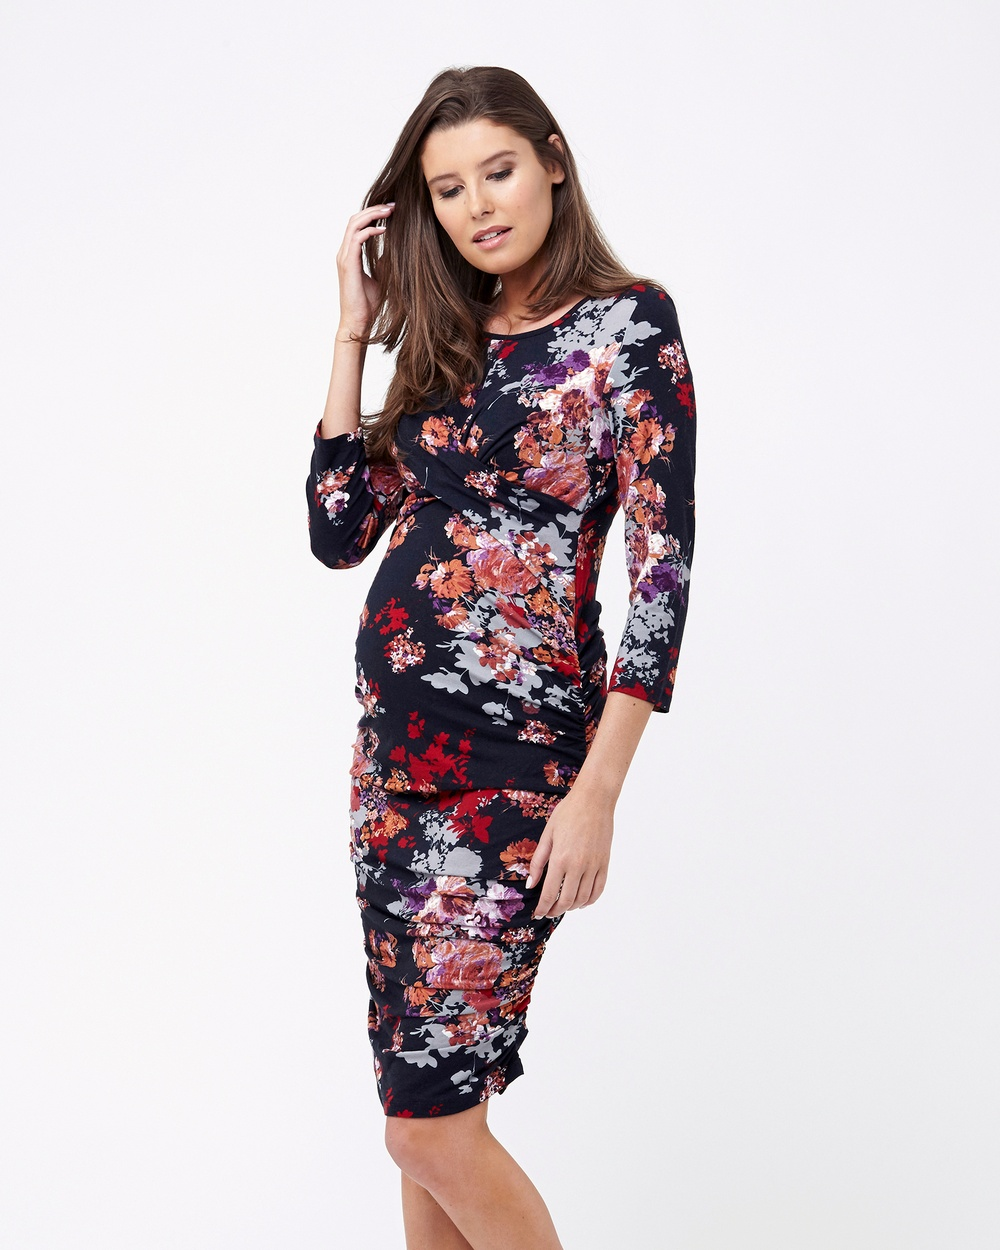 Ripe Maternity Blossom Cross Your Heart Dress 3 4 Sleeve Bodycon Dresses Navy Blossom Cross Your Heart Dress 3-4 Sleeve